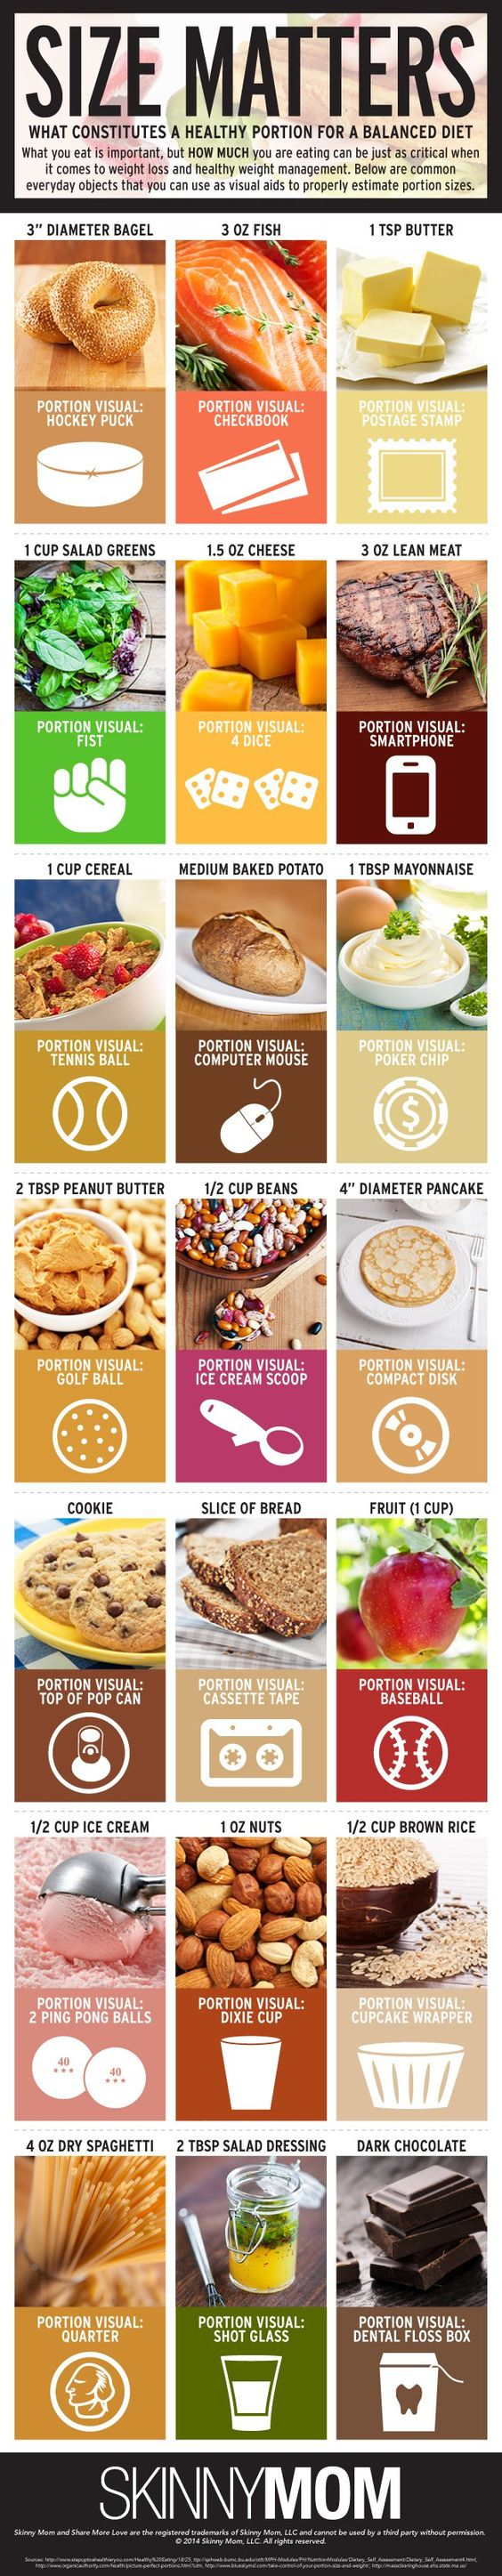 Food Proportions: good for you or not, if you're eating too much of something you could be hurting your diet.: